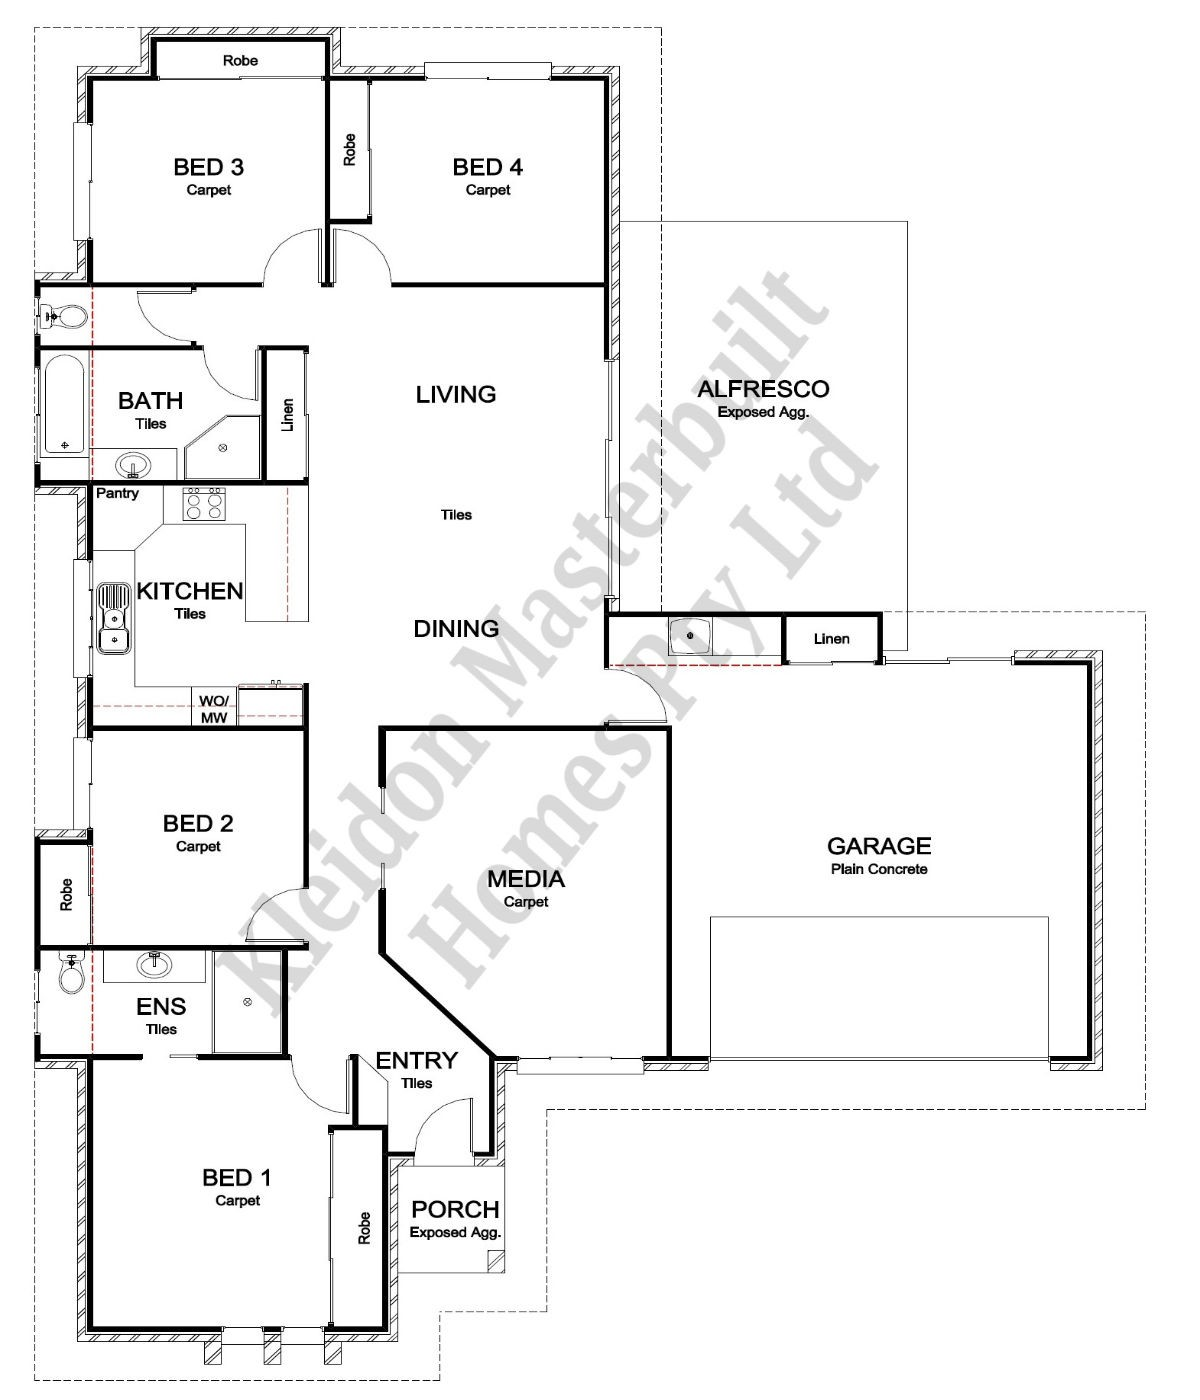 Lot 67 Gum Nut Drive, Ashfield Floorplan